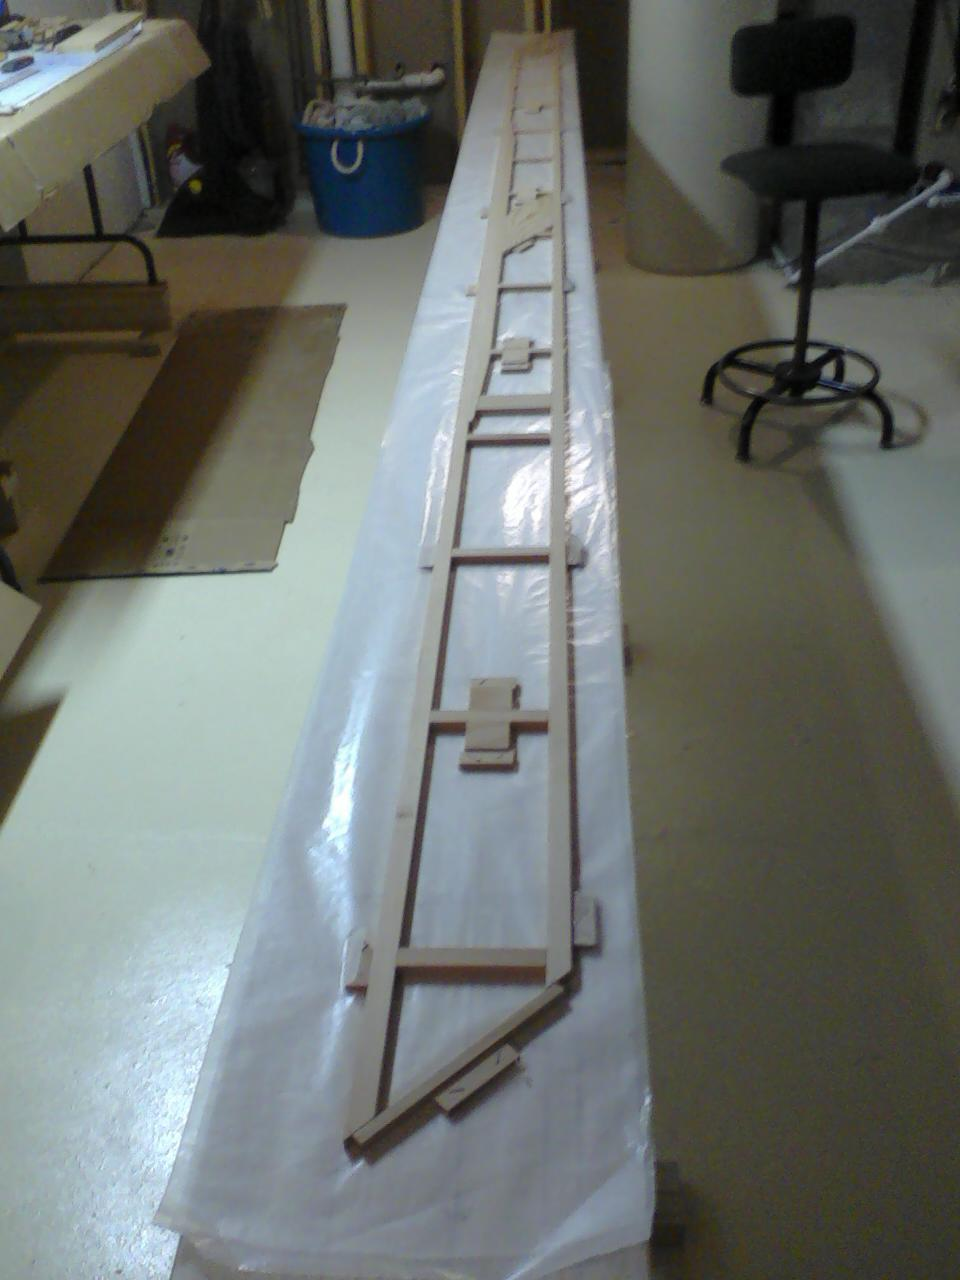 The half spar on the table. Note there is wax paper between the parchment paper and the pieces to be glued